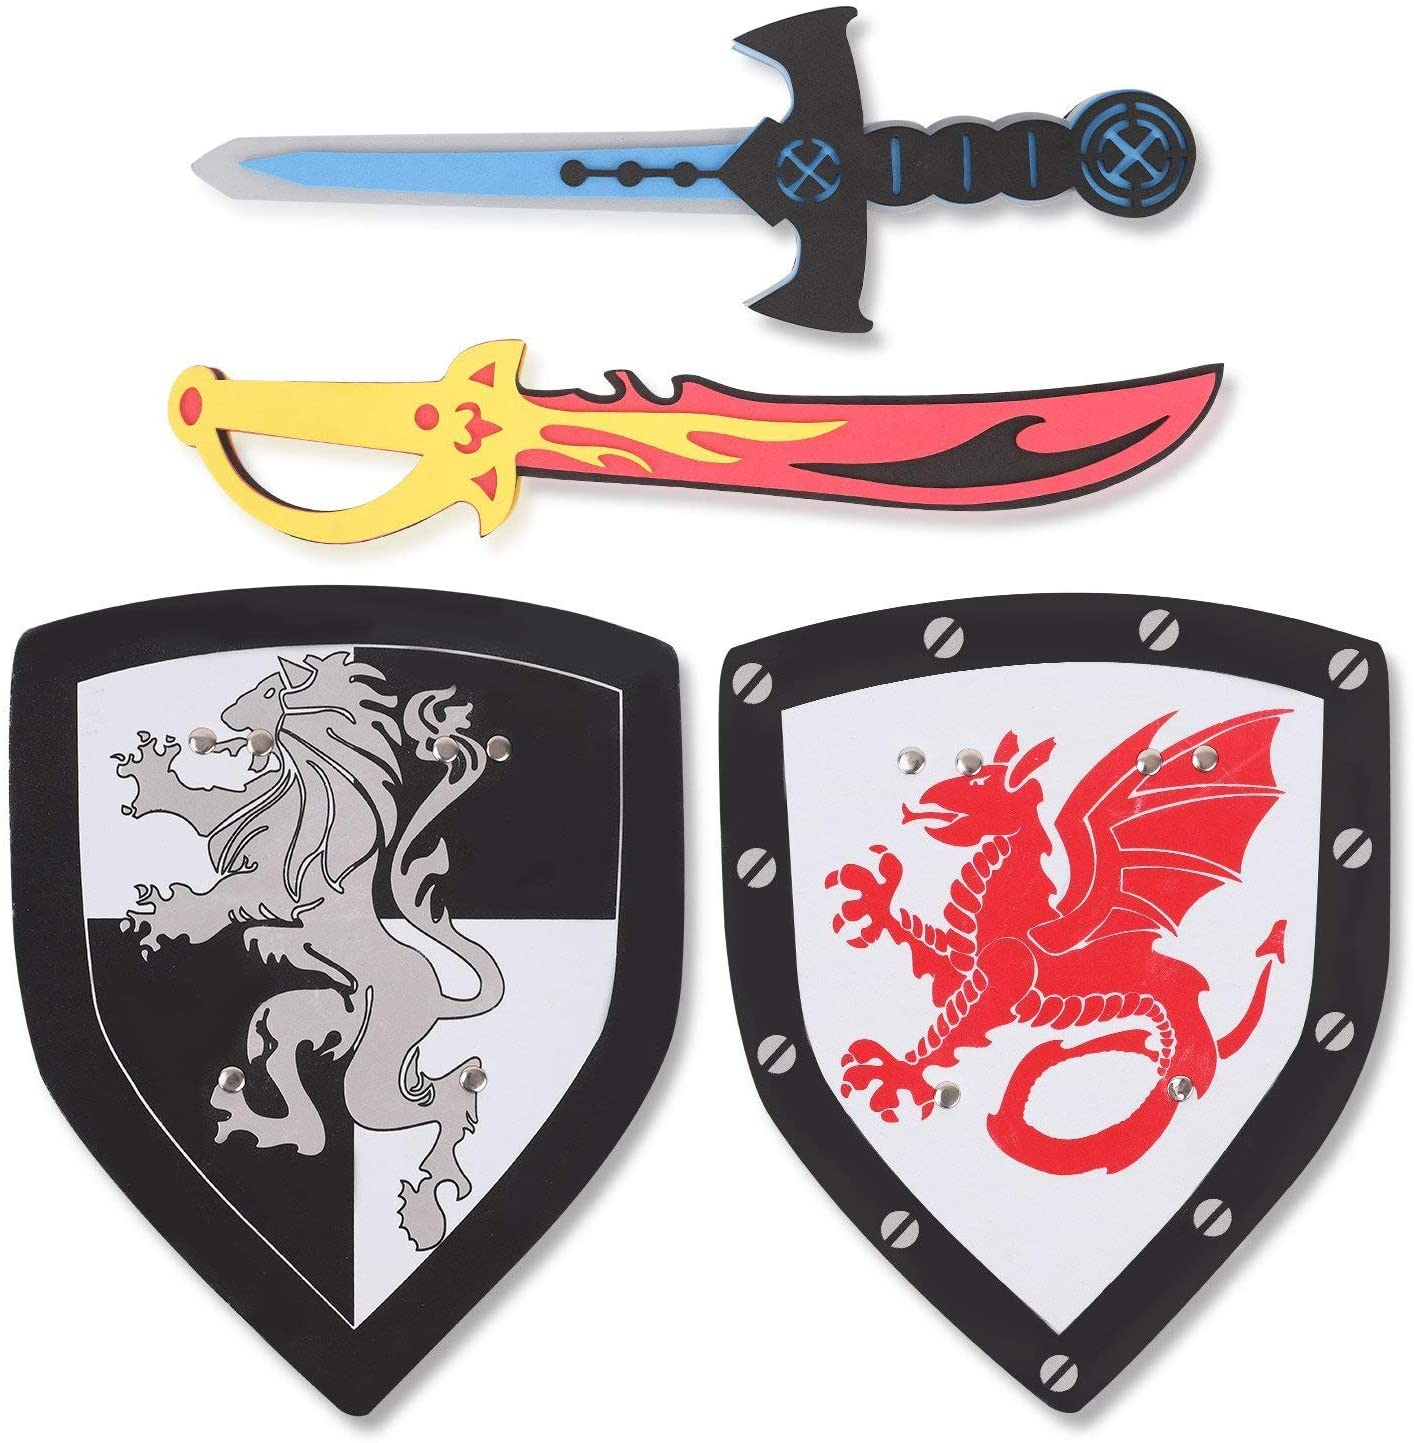 Performance Costume Props Pirates Sword Kids TB Plastic Weapon Sword Toy Fad US